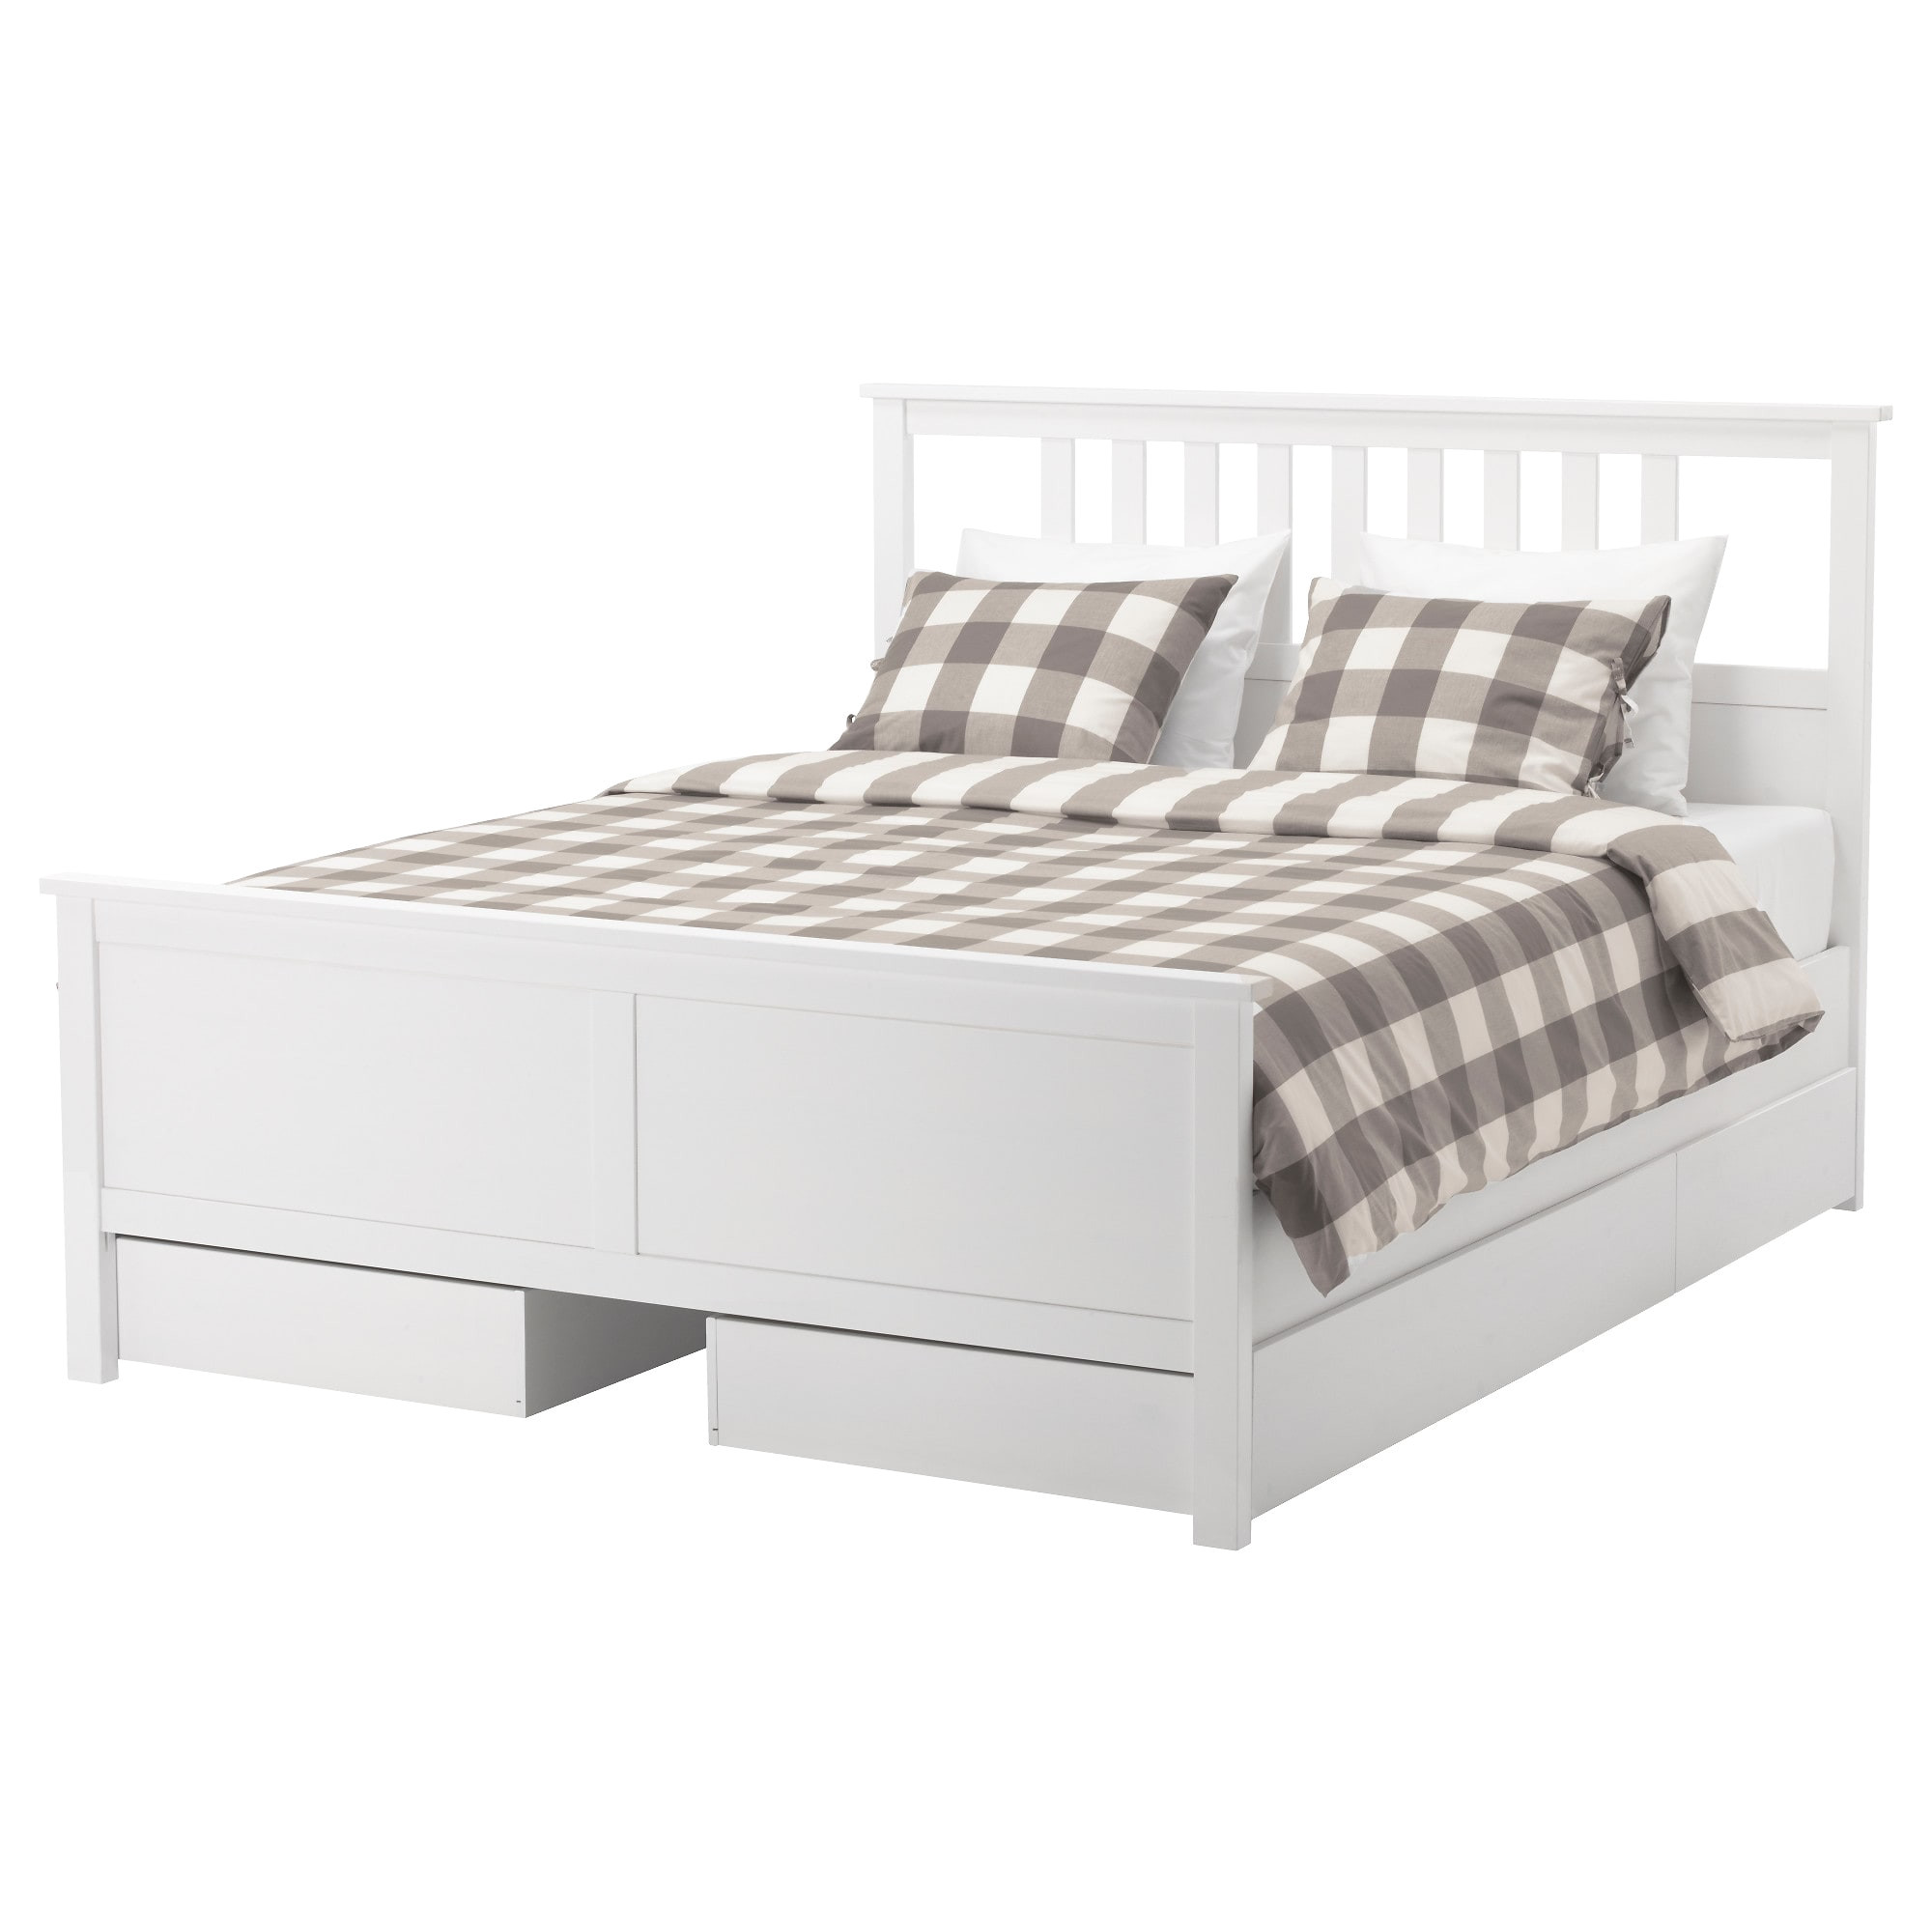 hemnes bed frame with 4 storage boxes white stain lur y standard double ikea